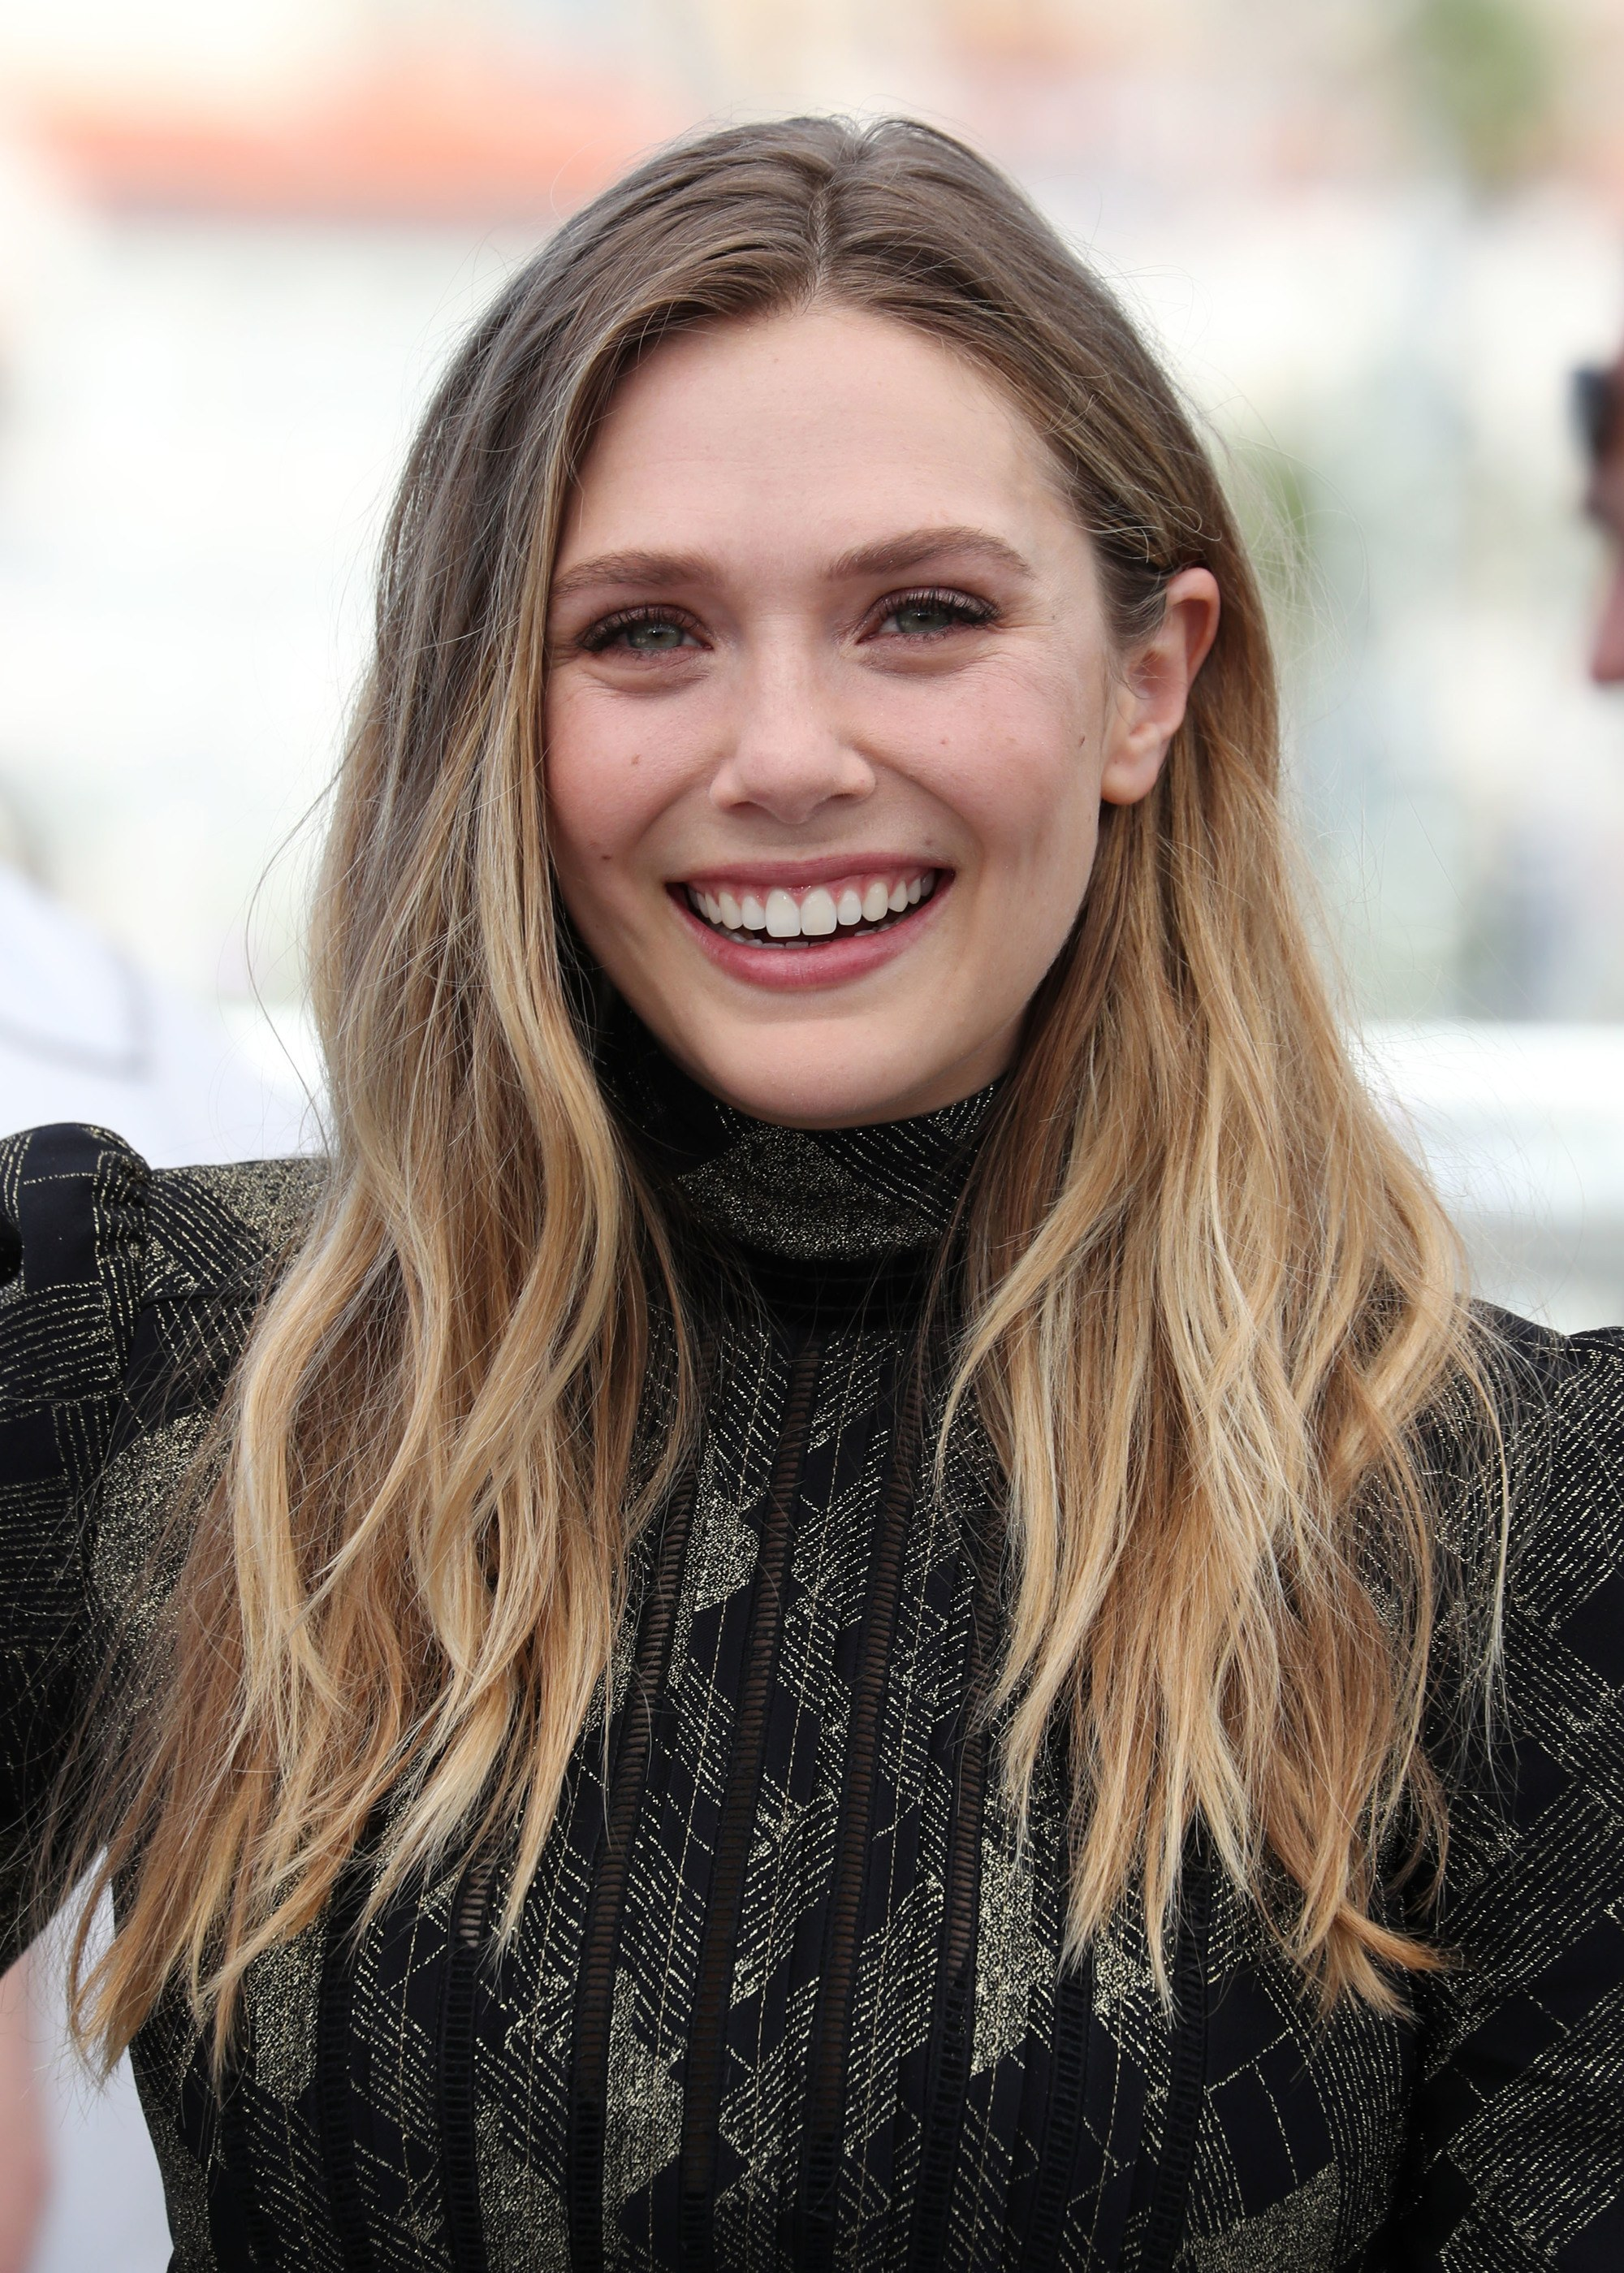 Dirty Blonde Hair Elizabeth Olsen Wears Her With Loose Waves